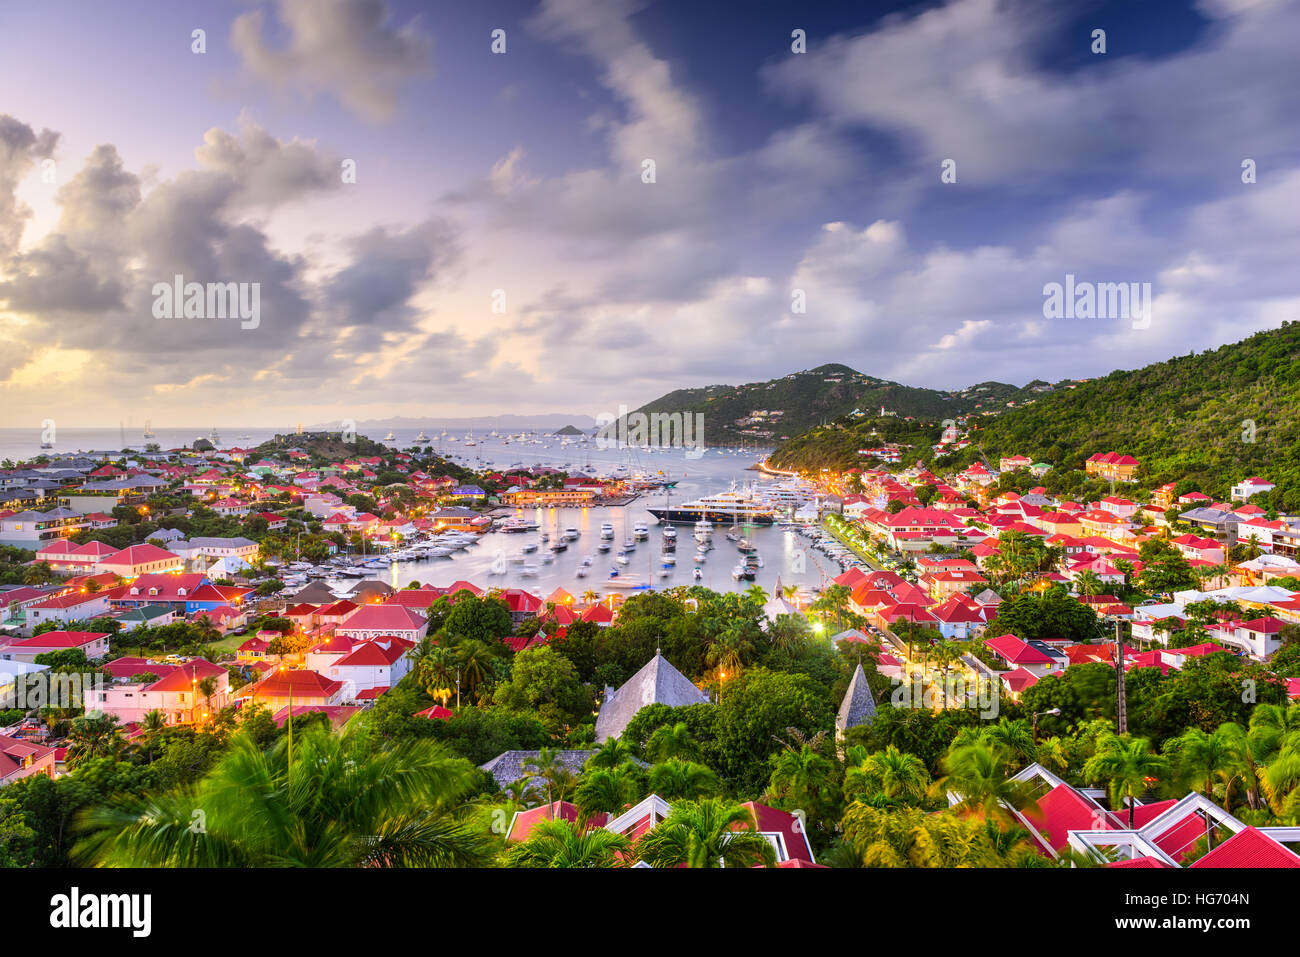 St. Bart's harbor and cityscape. - Stock Image